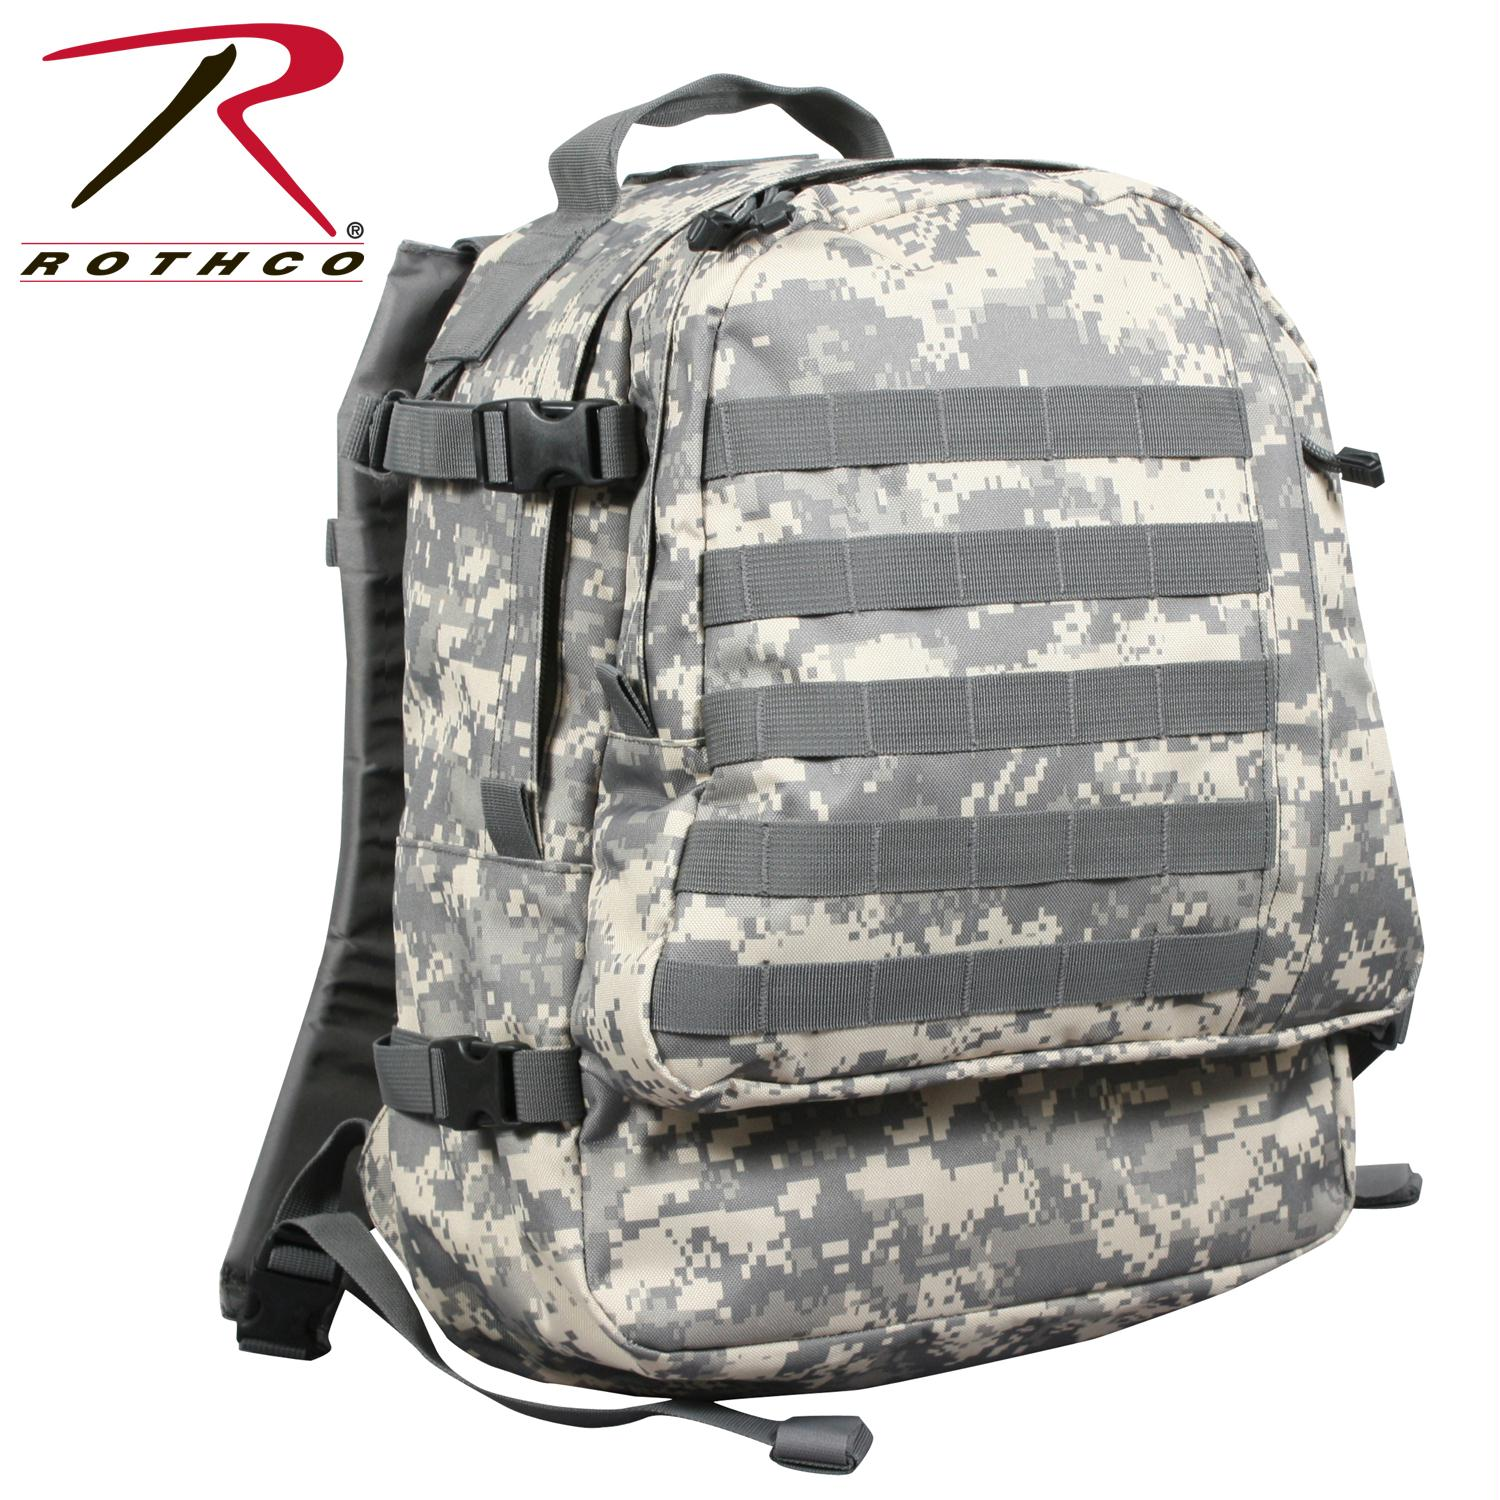 Rothco Deluxe ACU Digital MOLLE Long Range Assault Pack